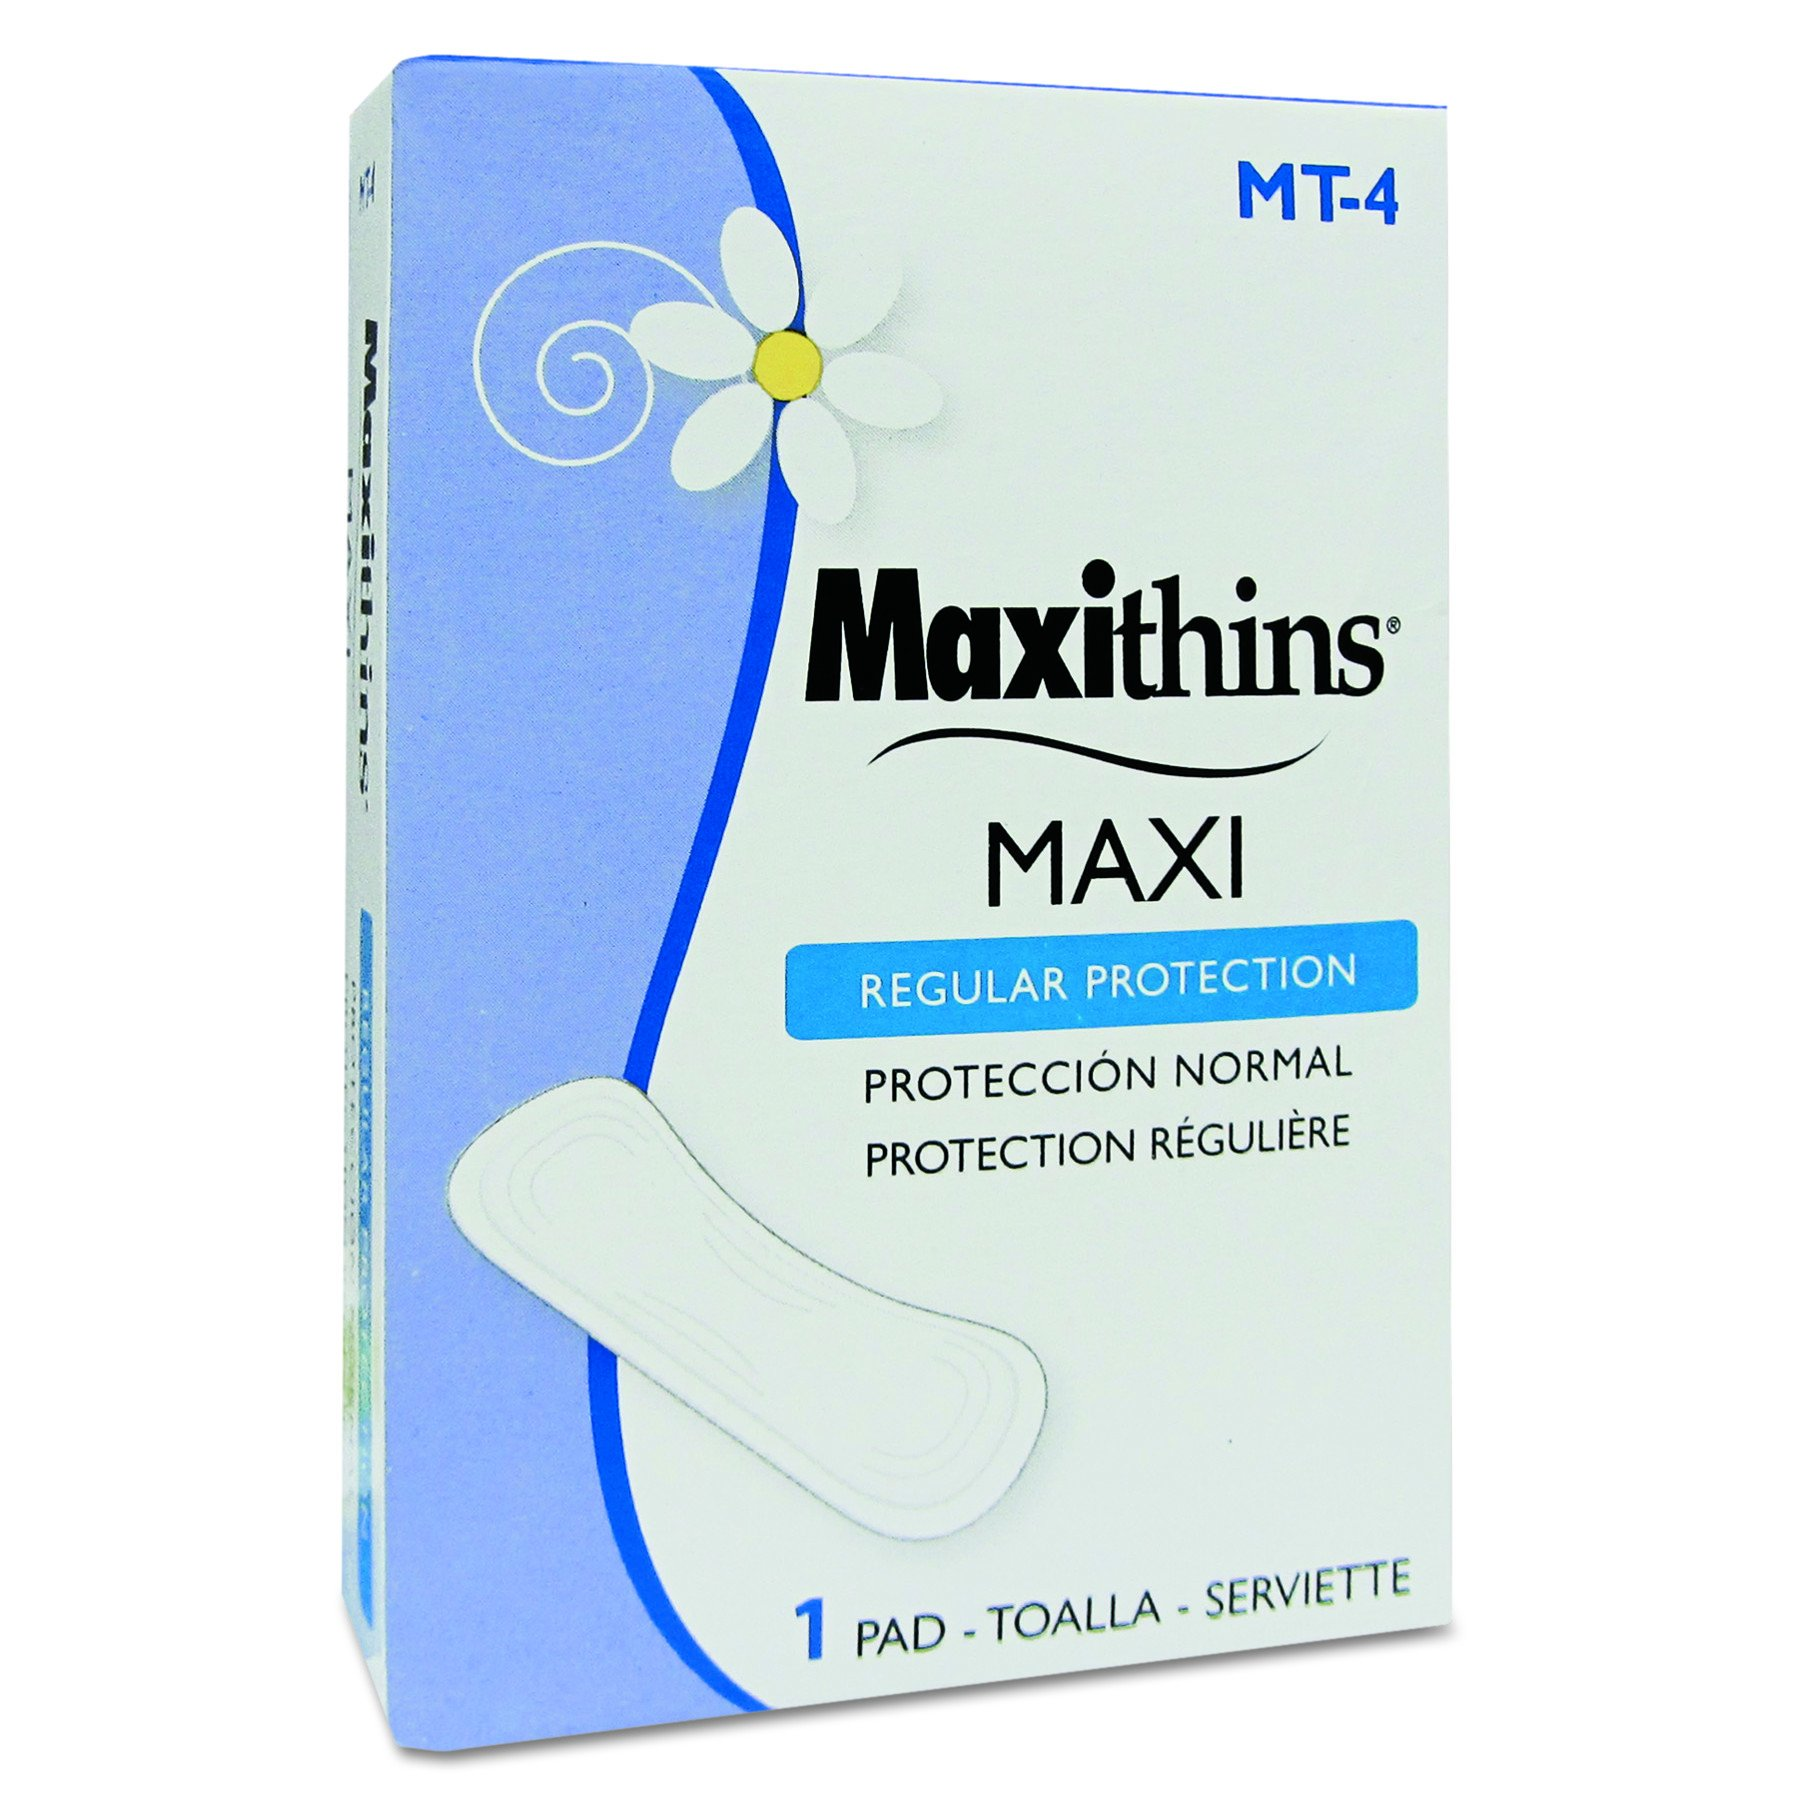 HOSPECO MT4 Maxithins Vended Sanitary Napkins #4 (Case of 250 Individually Boxed Napkins)